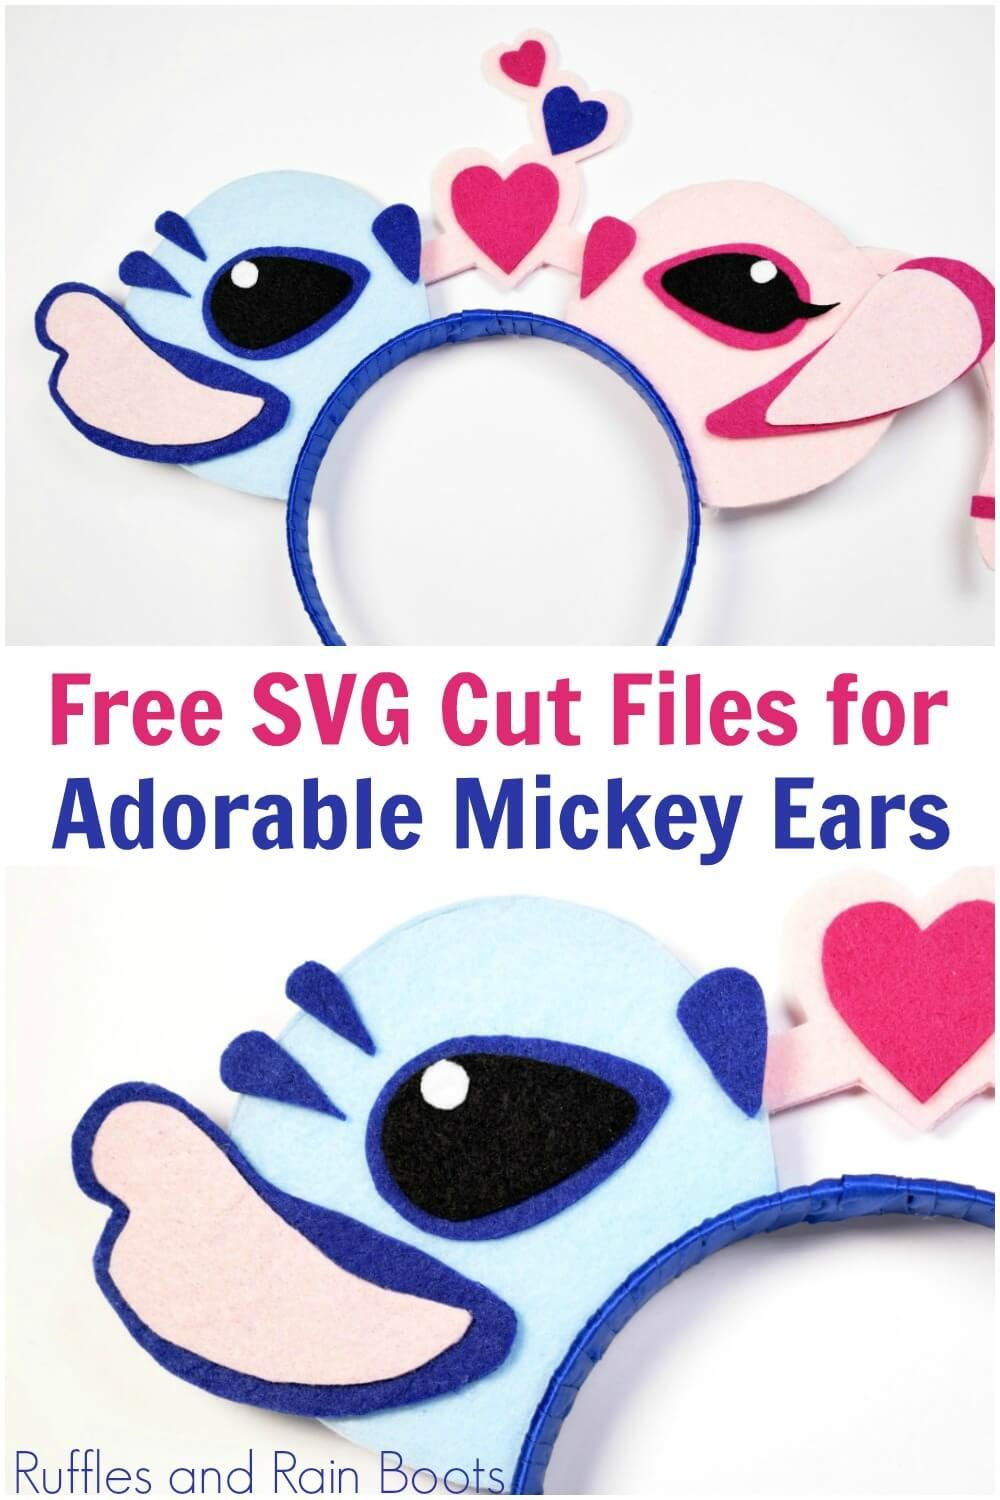 Angel and Stitch SVG for Mickey Ears, Ornaments, or Crafts